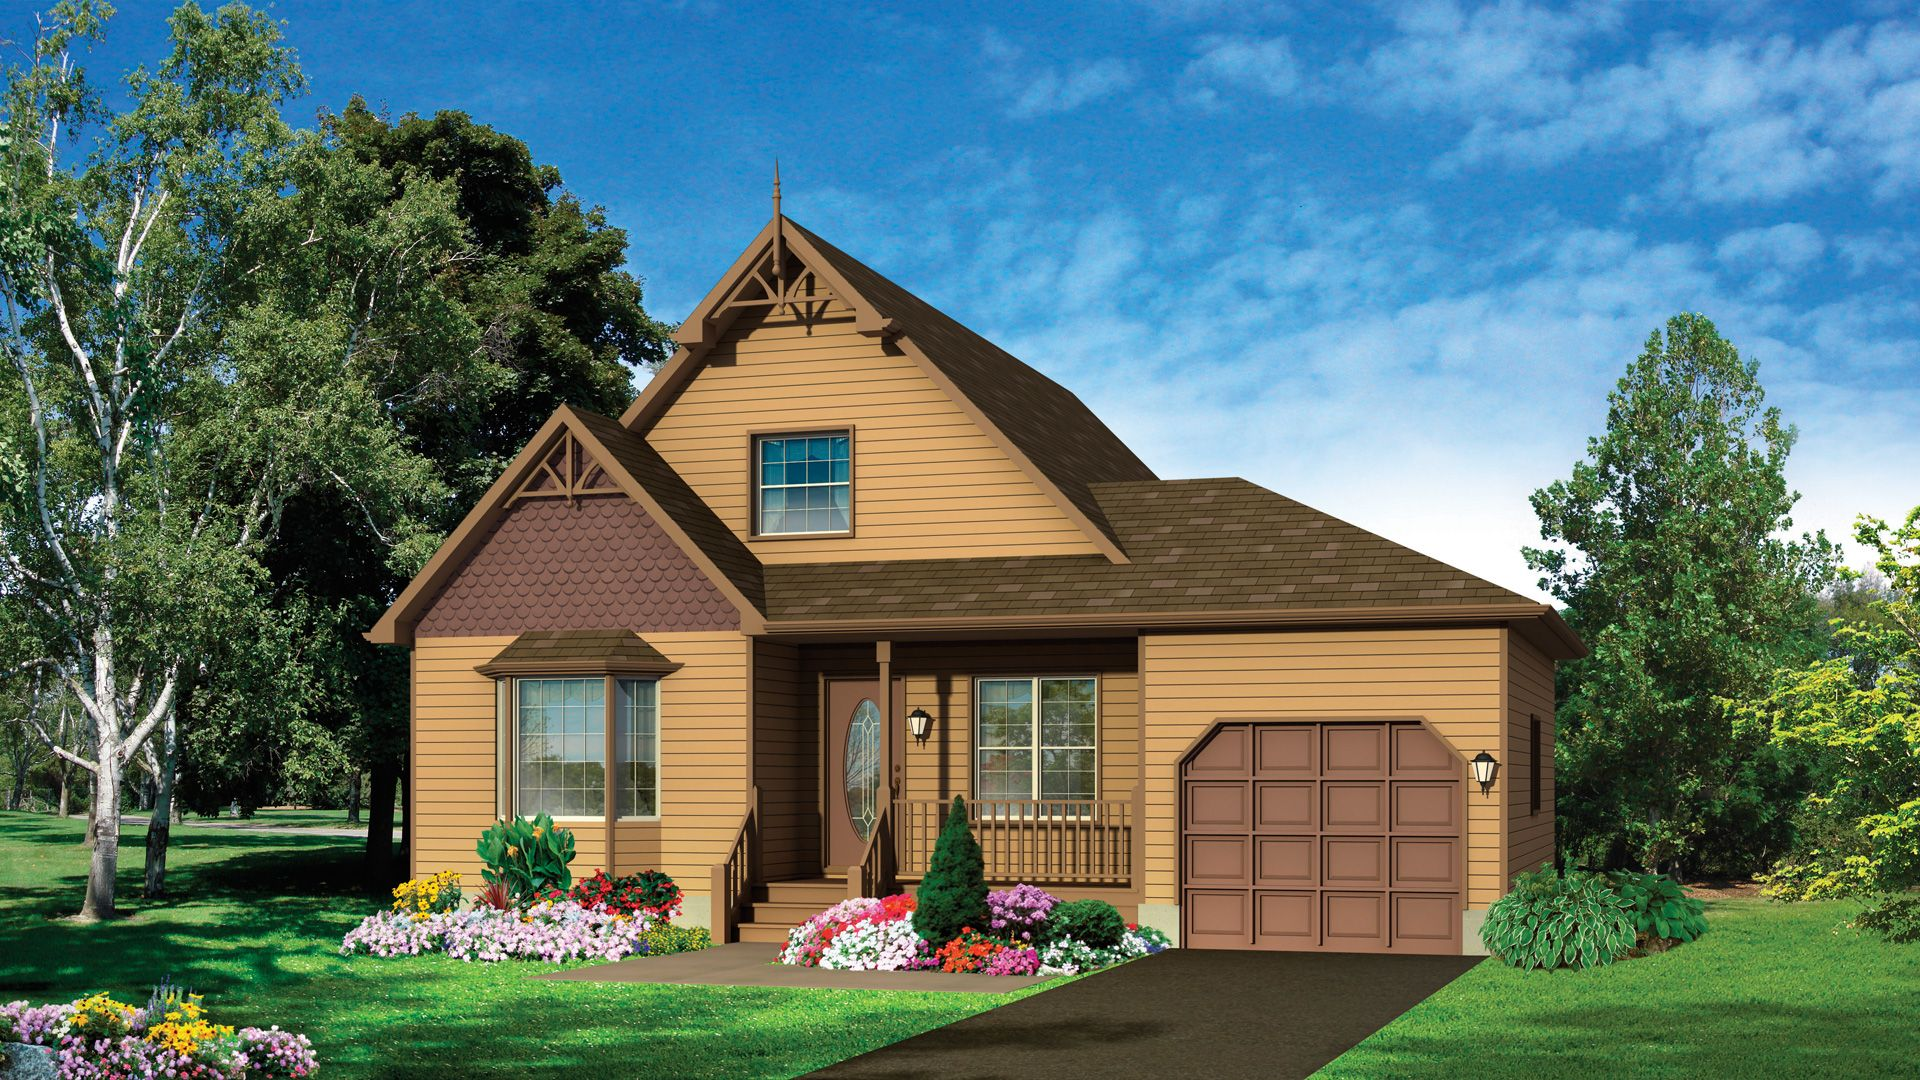 High quality modular homes, find your dream Tiger Lily model at ...